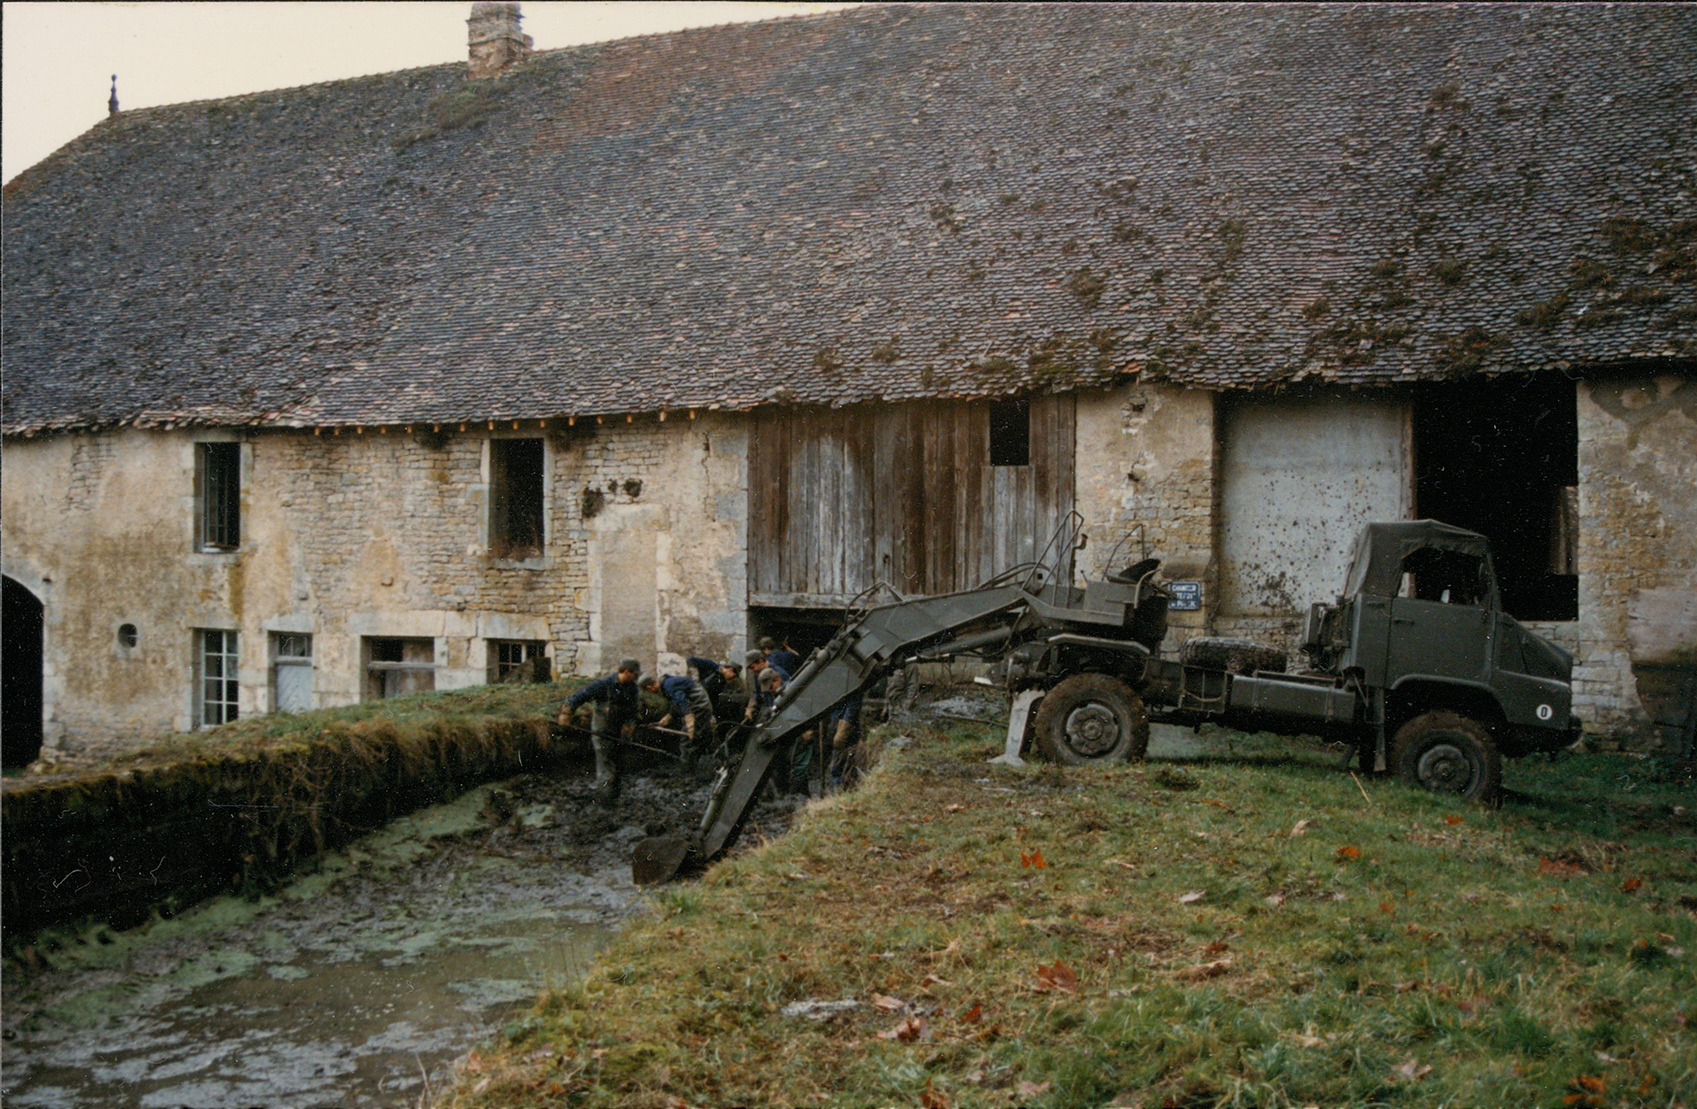 A view of a barn in France during a Preservation Maryland trip in 1987.